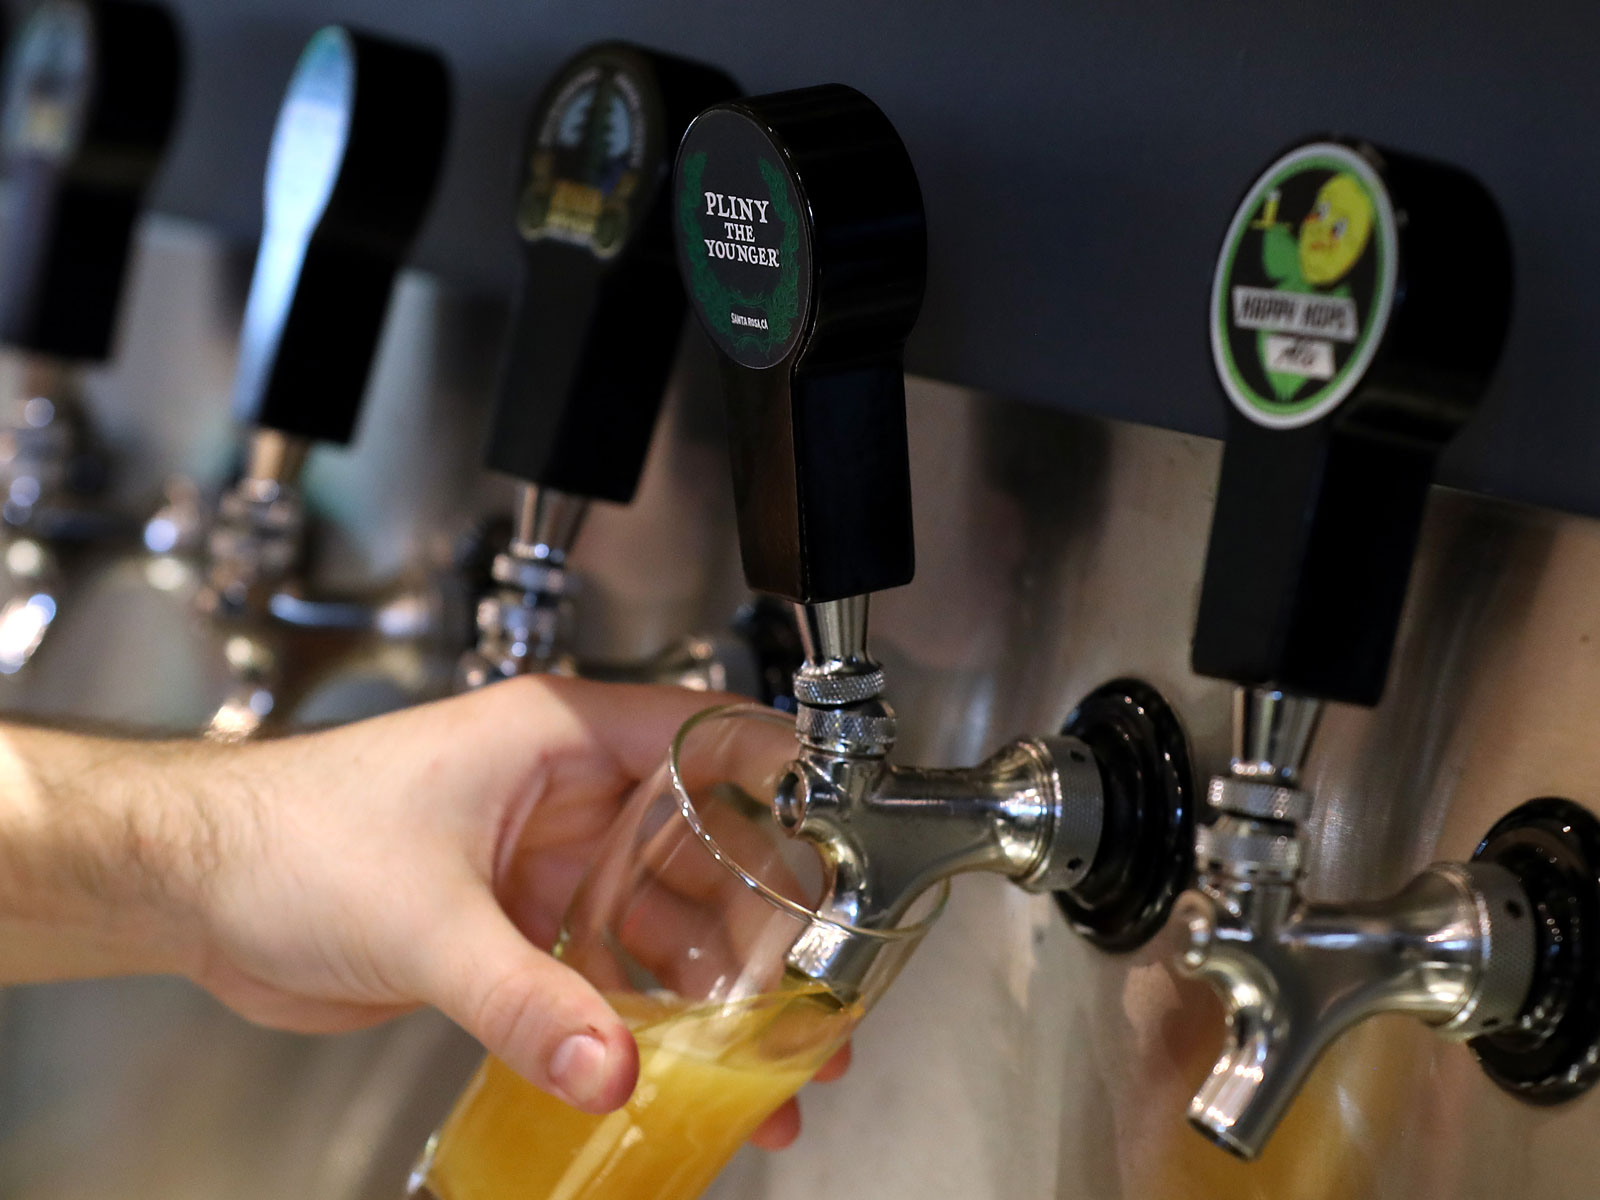 Russian River's Pliny the Younger IPA Generated Over $4 Million for Sonoma County